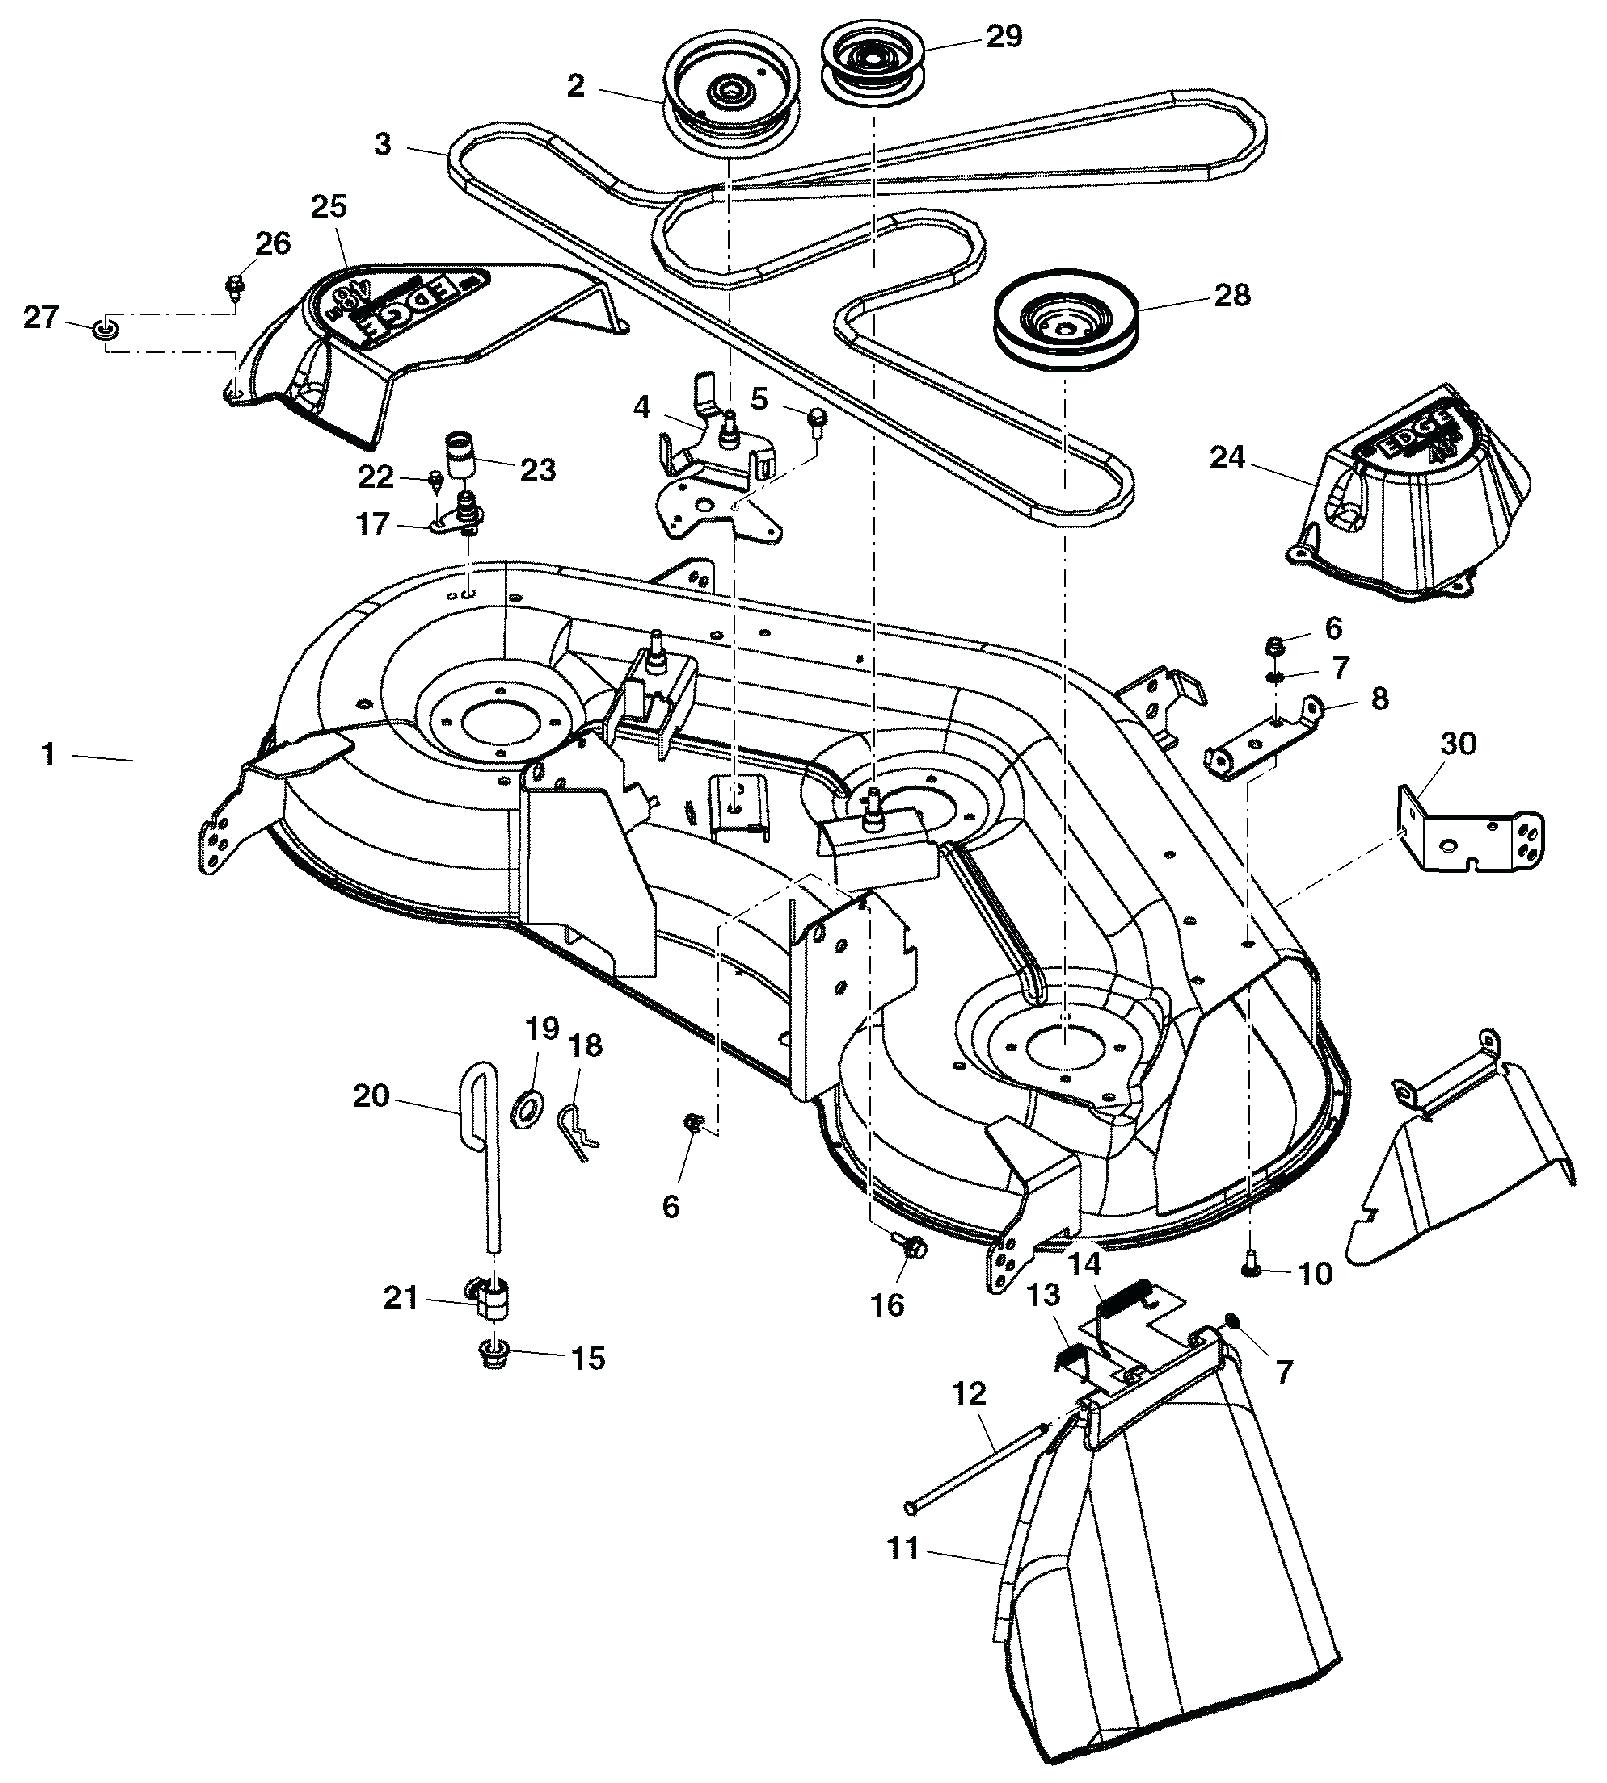 2013 Honda Cr V Parts Diagram Html Com